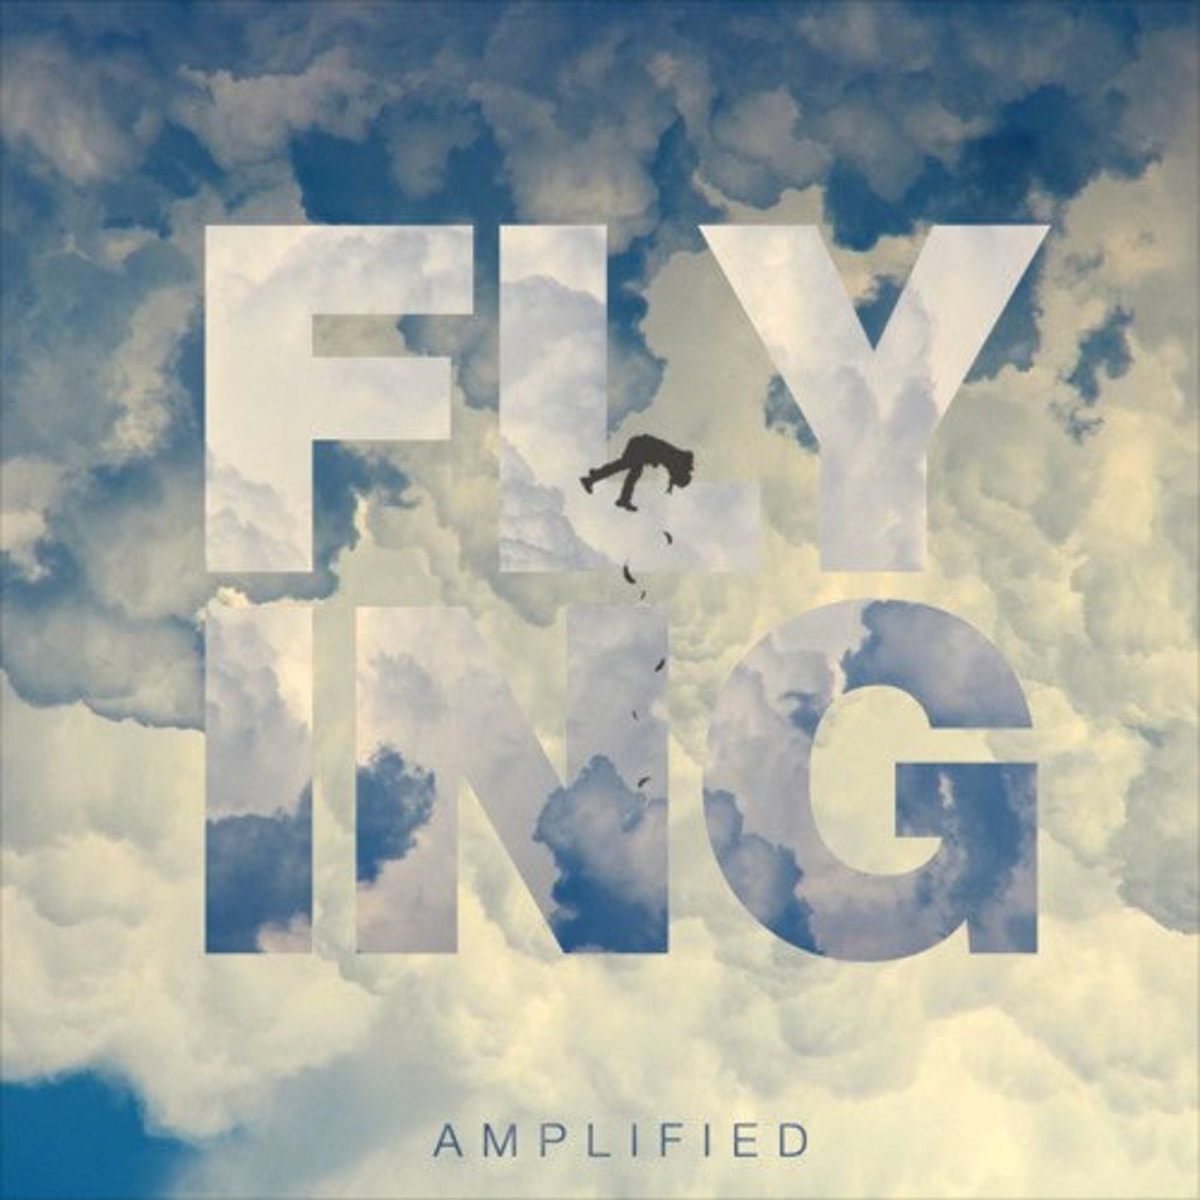 amplified-flying.jpg